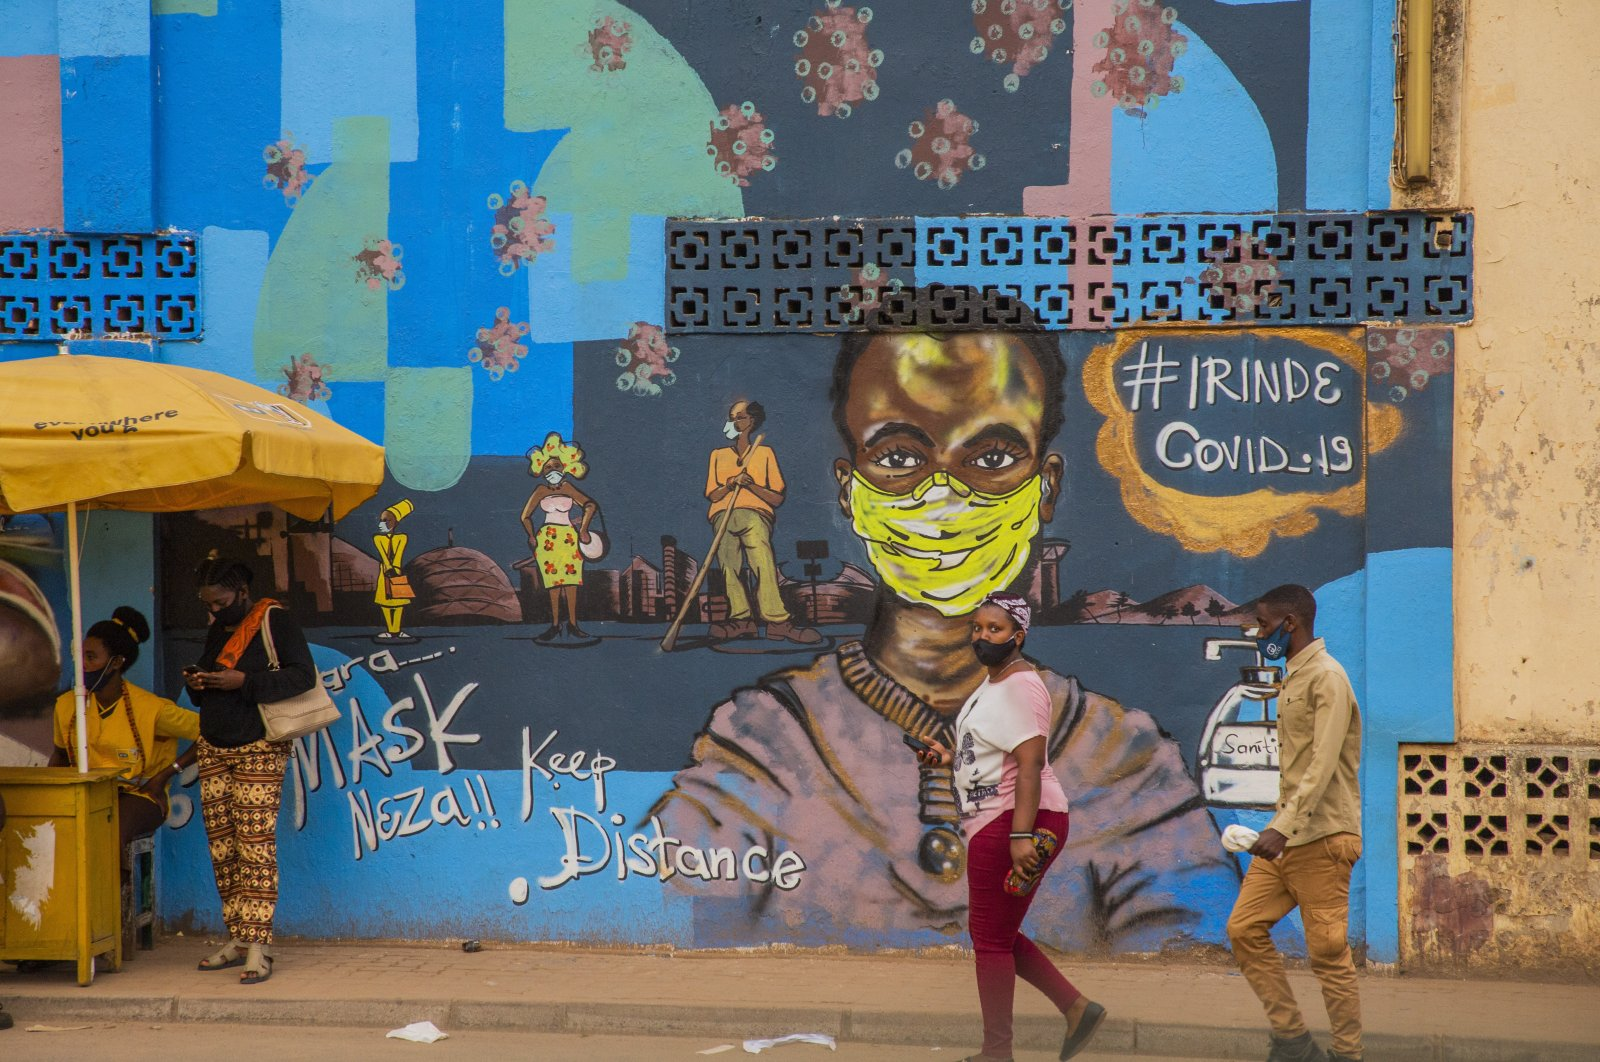 Passersby walk near a mural warning people to keep a distance and wear a mask in Kigali, central Rwanda, Sept. 11, 2020. (AA PHOTO)